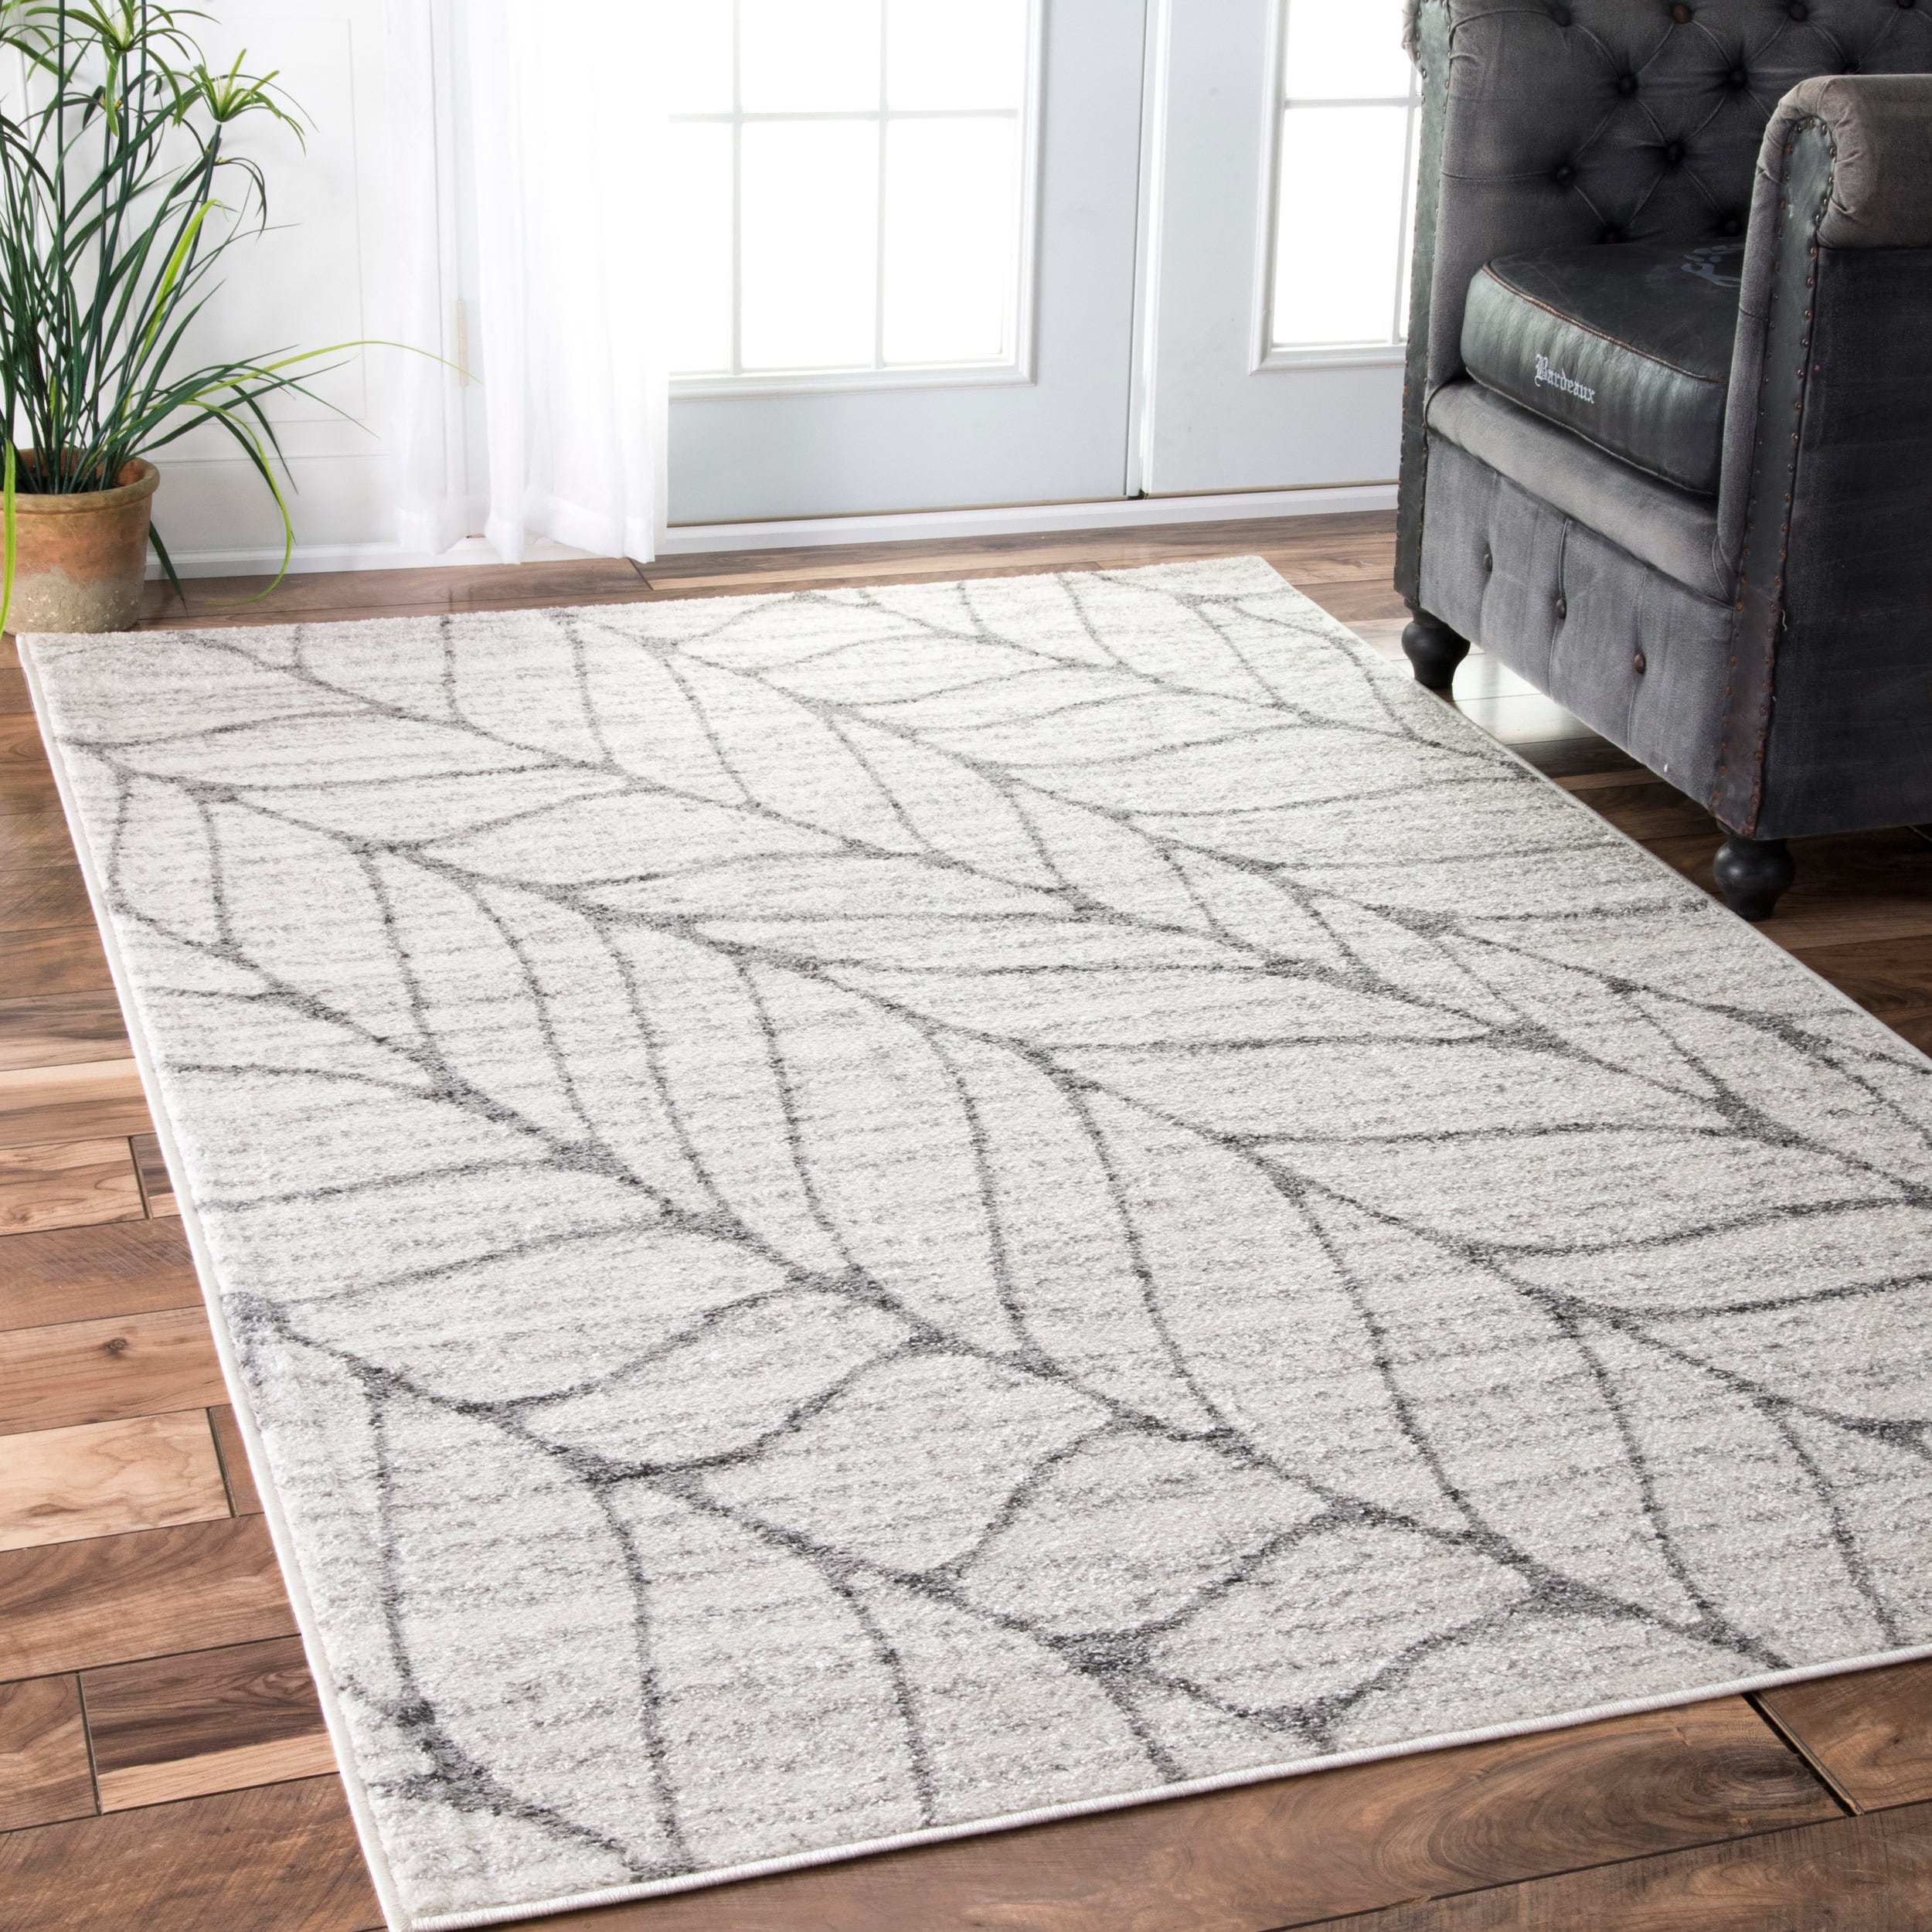 Nuloom Contemporary Granite Abstract Leaves Grey Accent Rug 2 X27